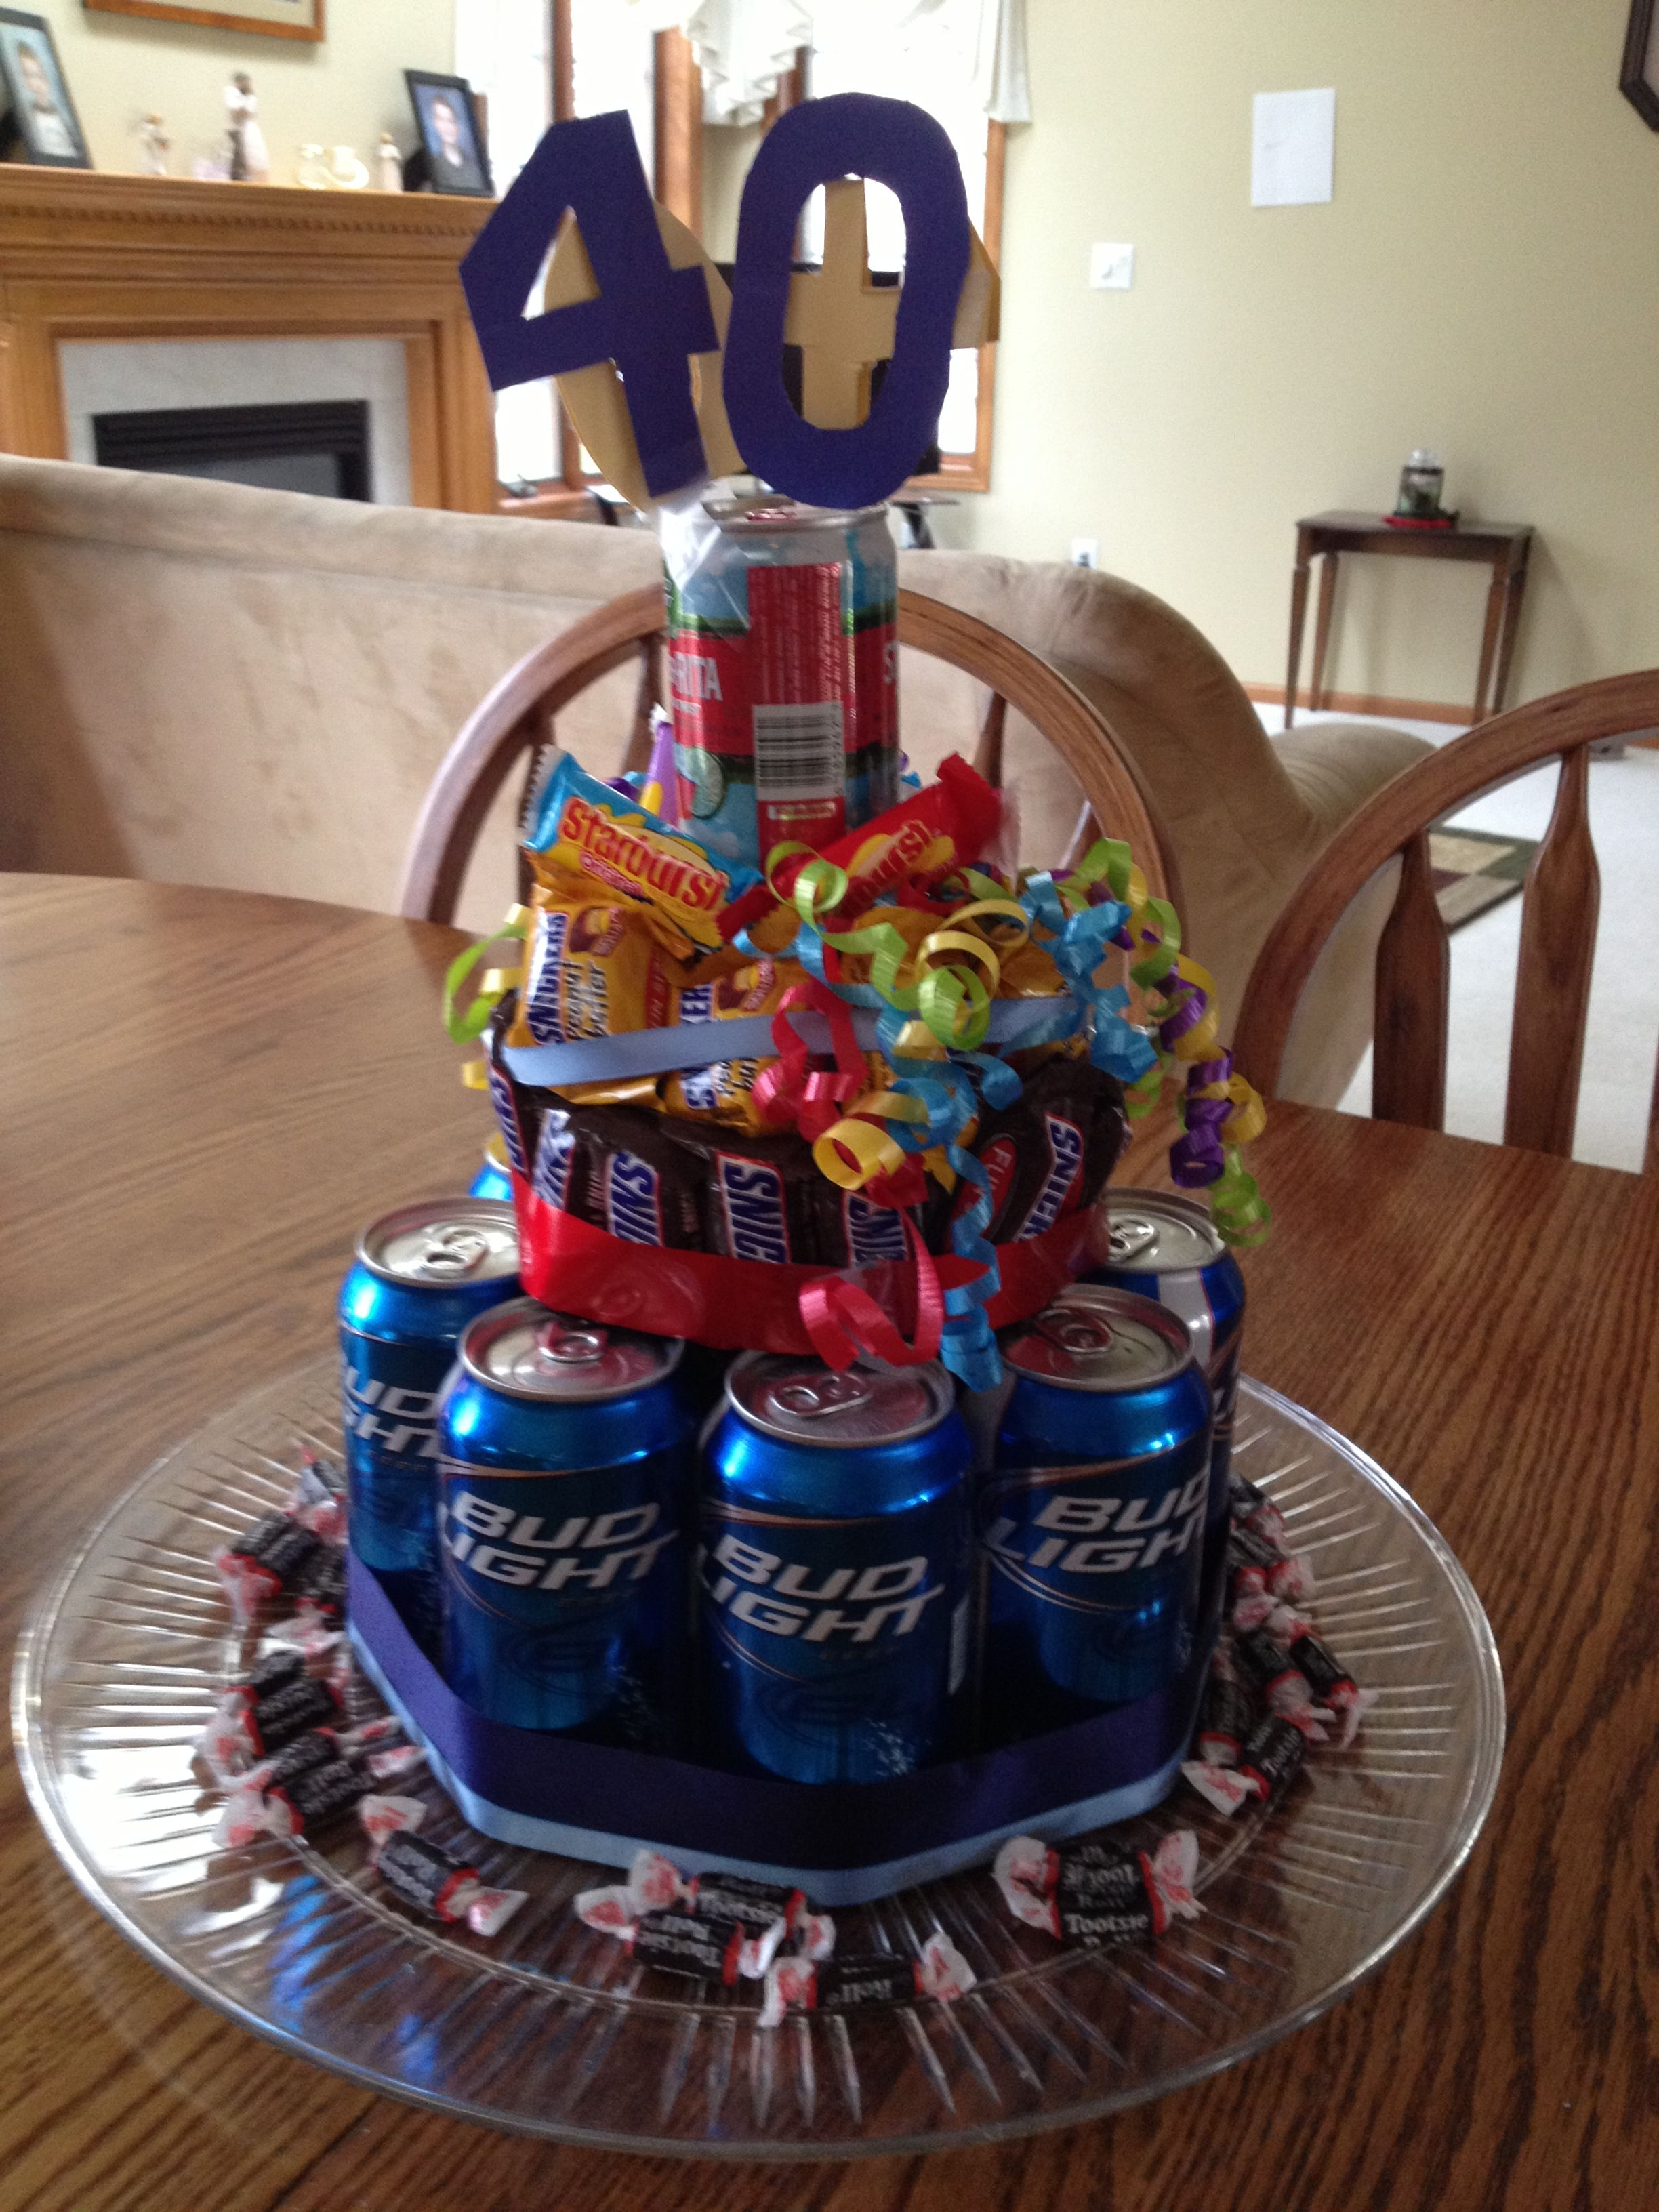 Beer/candy birthday cake for 40th birthday! But has to be